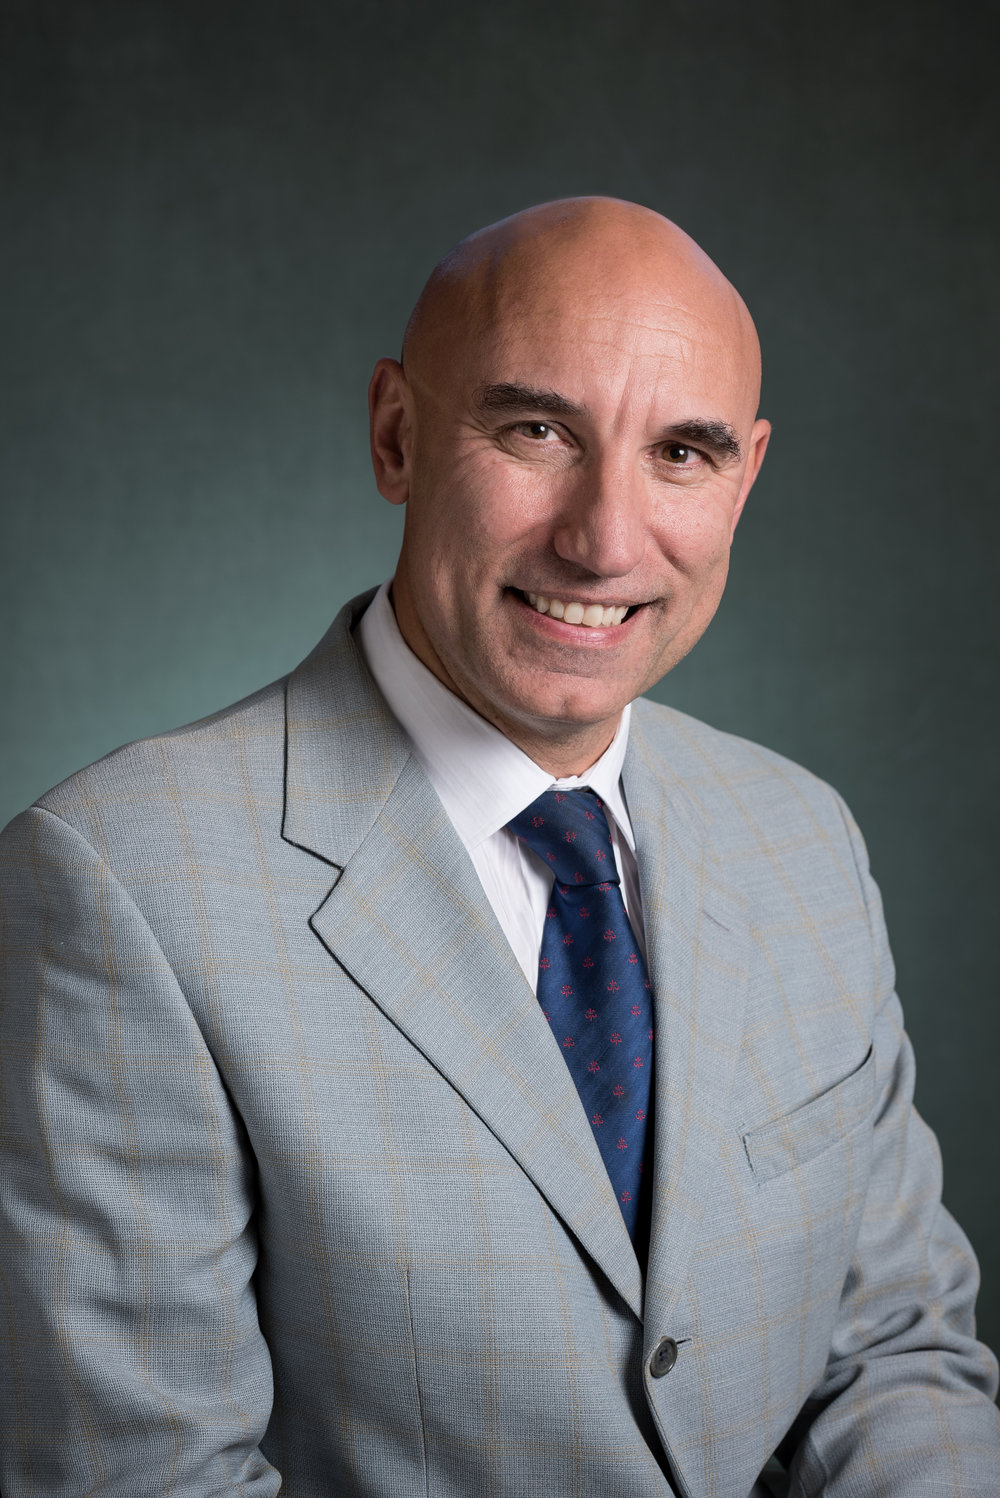 Smiling bald man wearing light gray business suit